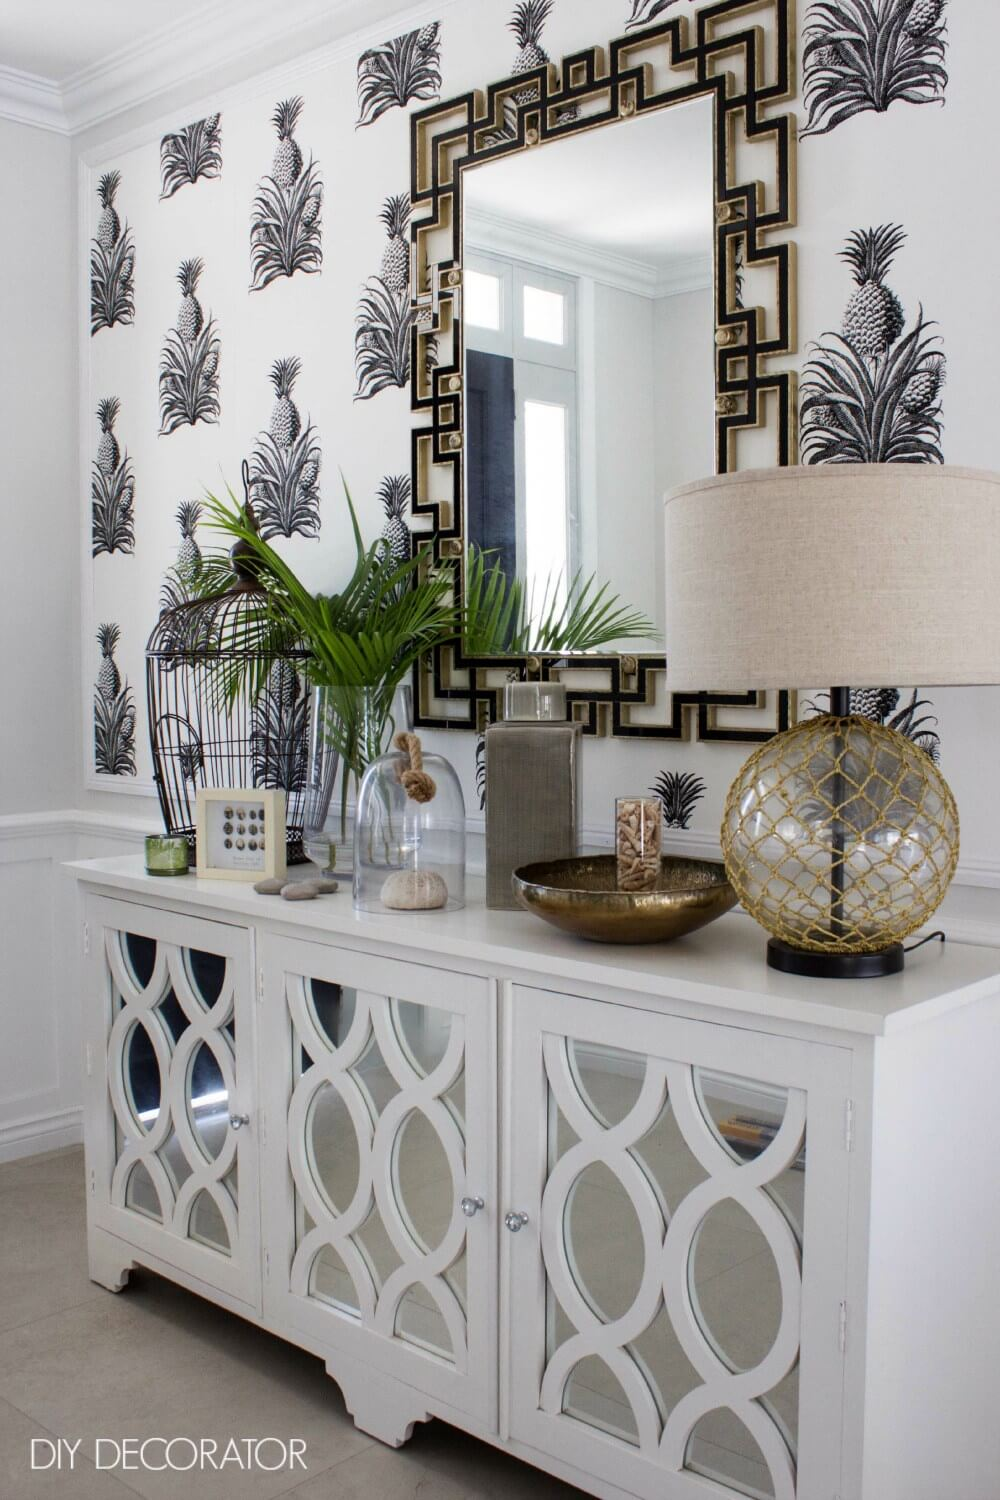 Mirrored Sideboard and Pineapple Wallpaper